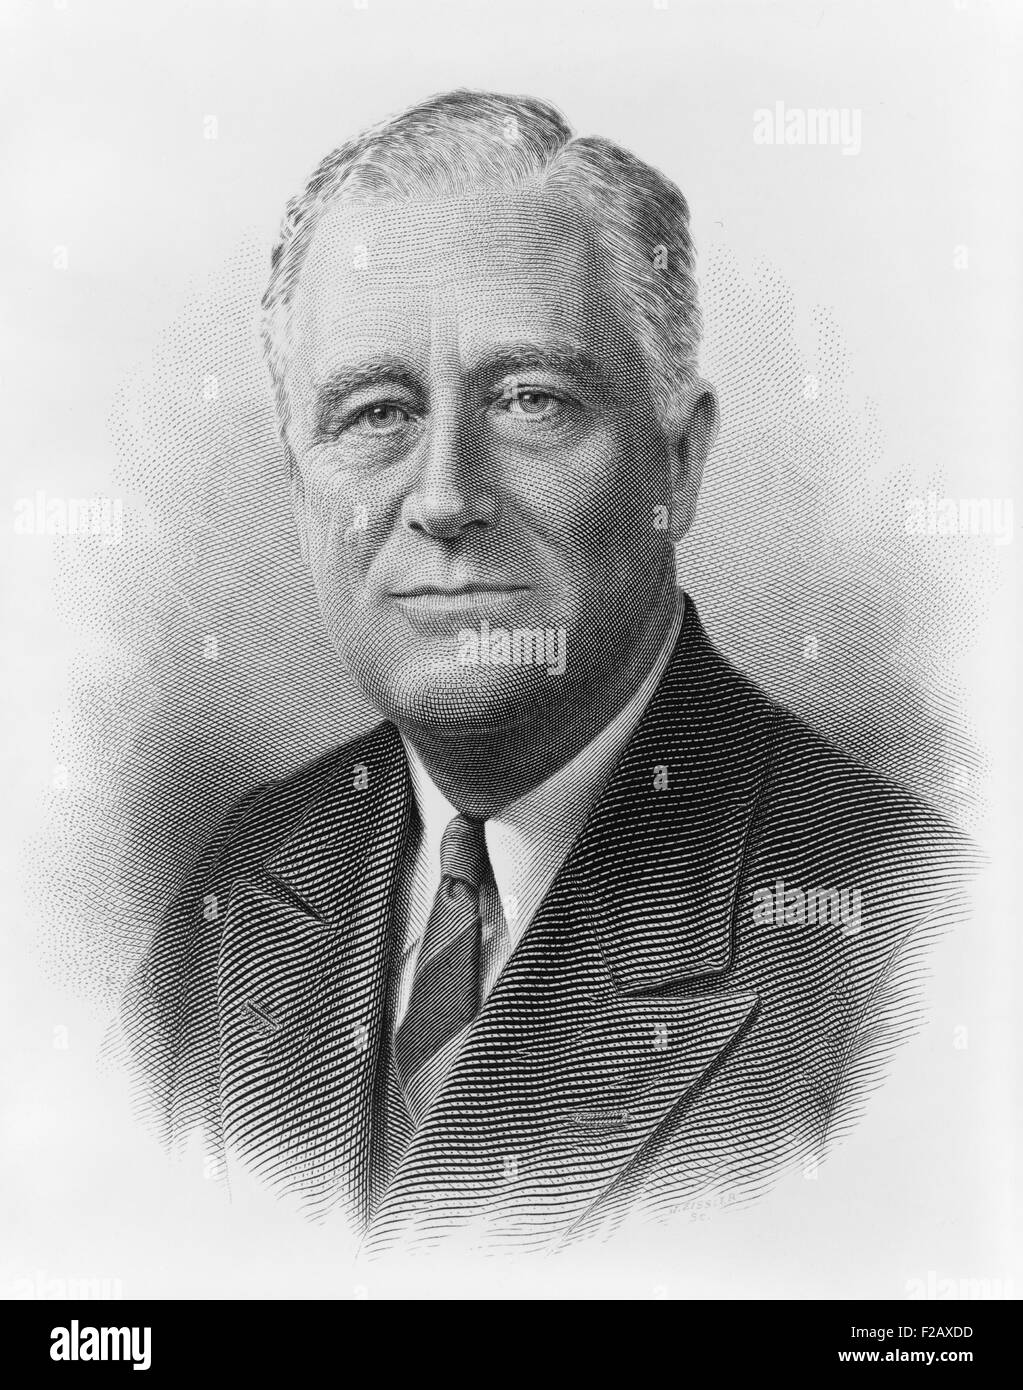 President Franklin Roosevelt in a engraved portrait by the Bureau of Printing and Engraving. Ca. 1932-1940. (BSLOC - Stock Image